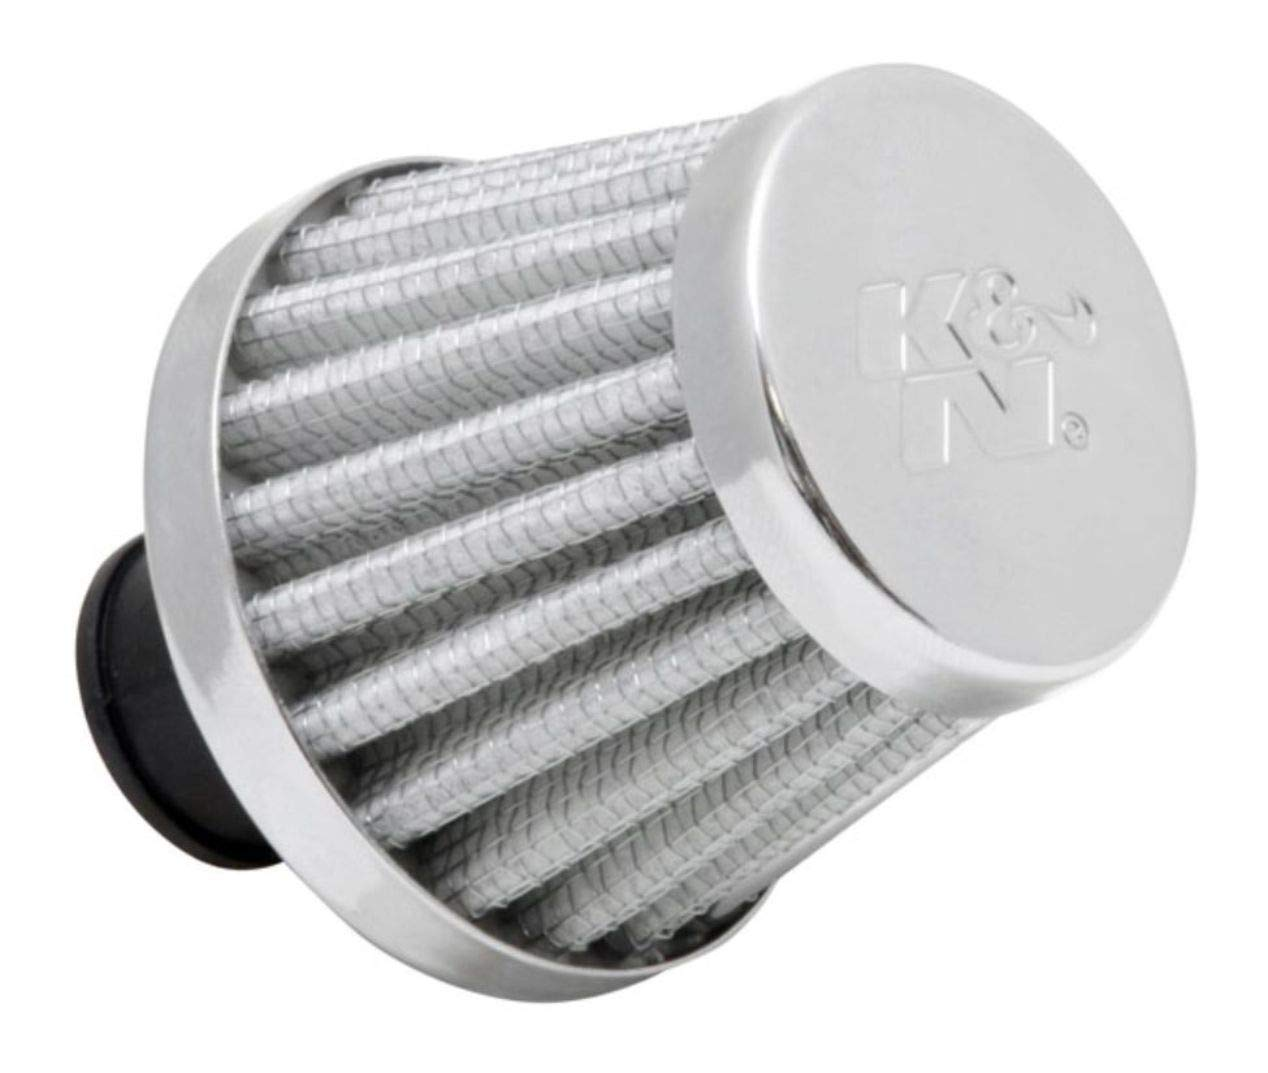 K&N Vent Air Filter/Breather: High Performance, Premium, Washable, Replacement Engine Filter: Flange Diameter: 0.375 In, Filter Height: 1.75 In, Flange Length: 0.5 In, Shape: Breather, 62-1600WT